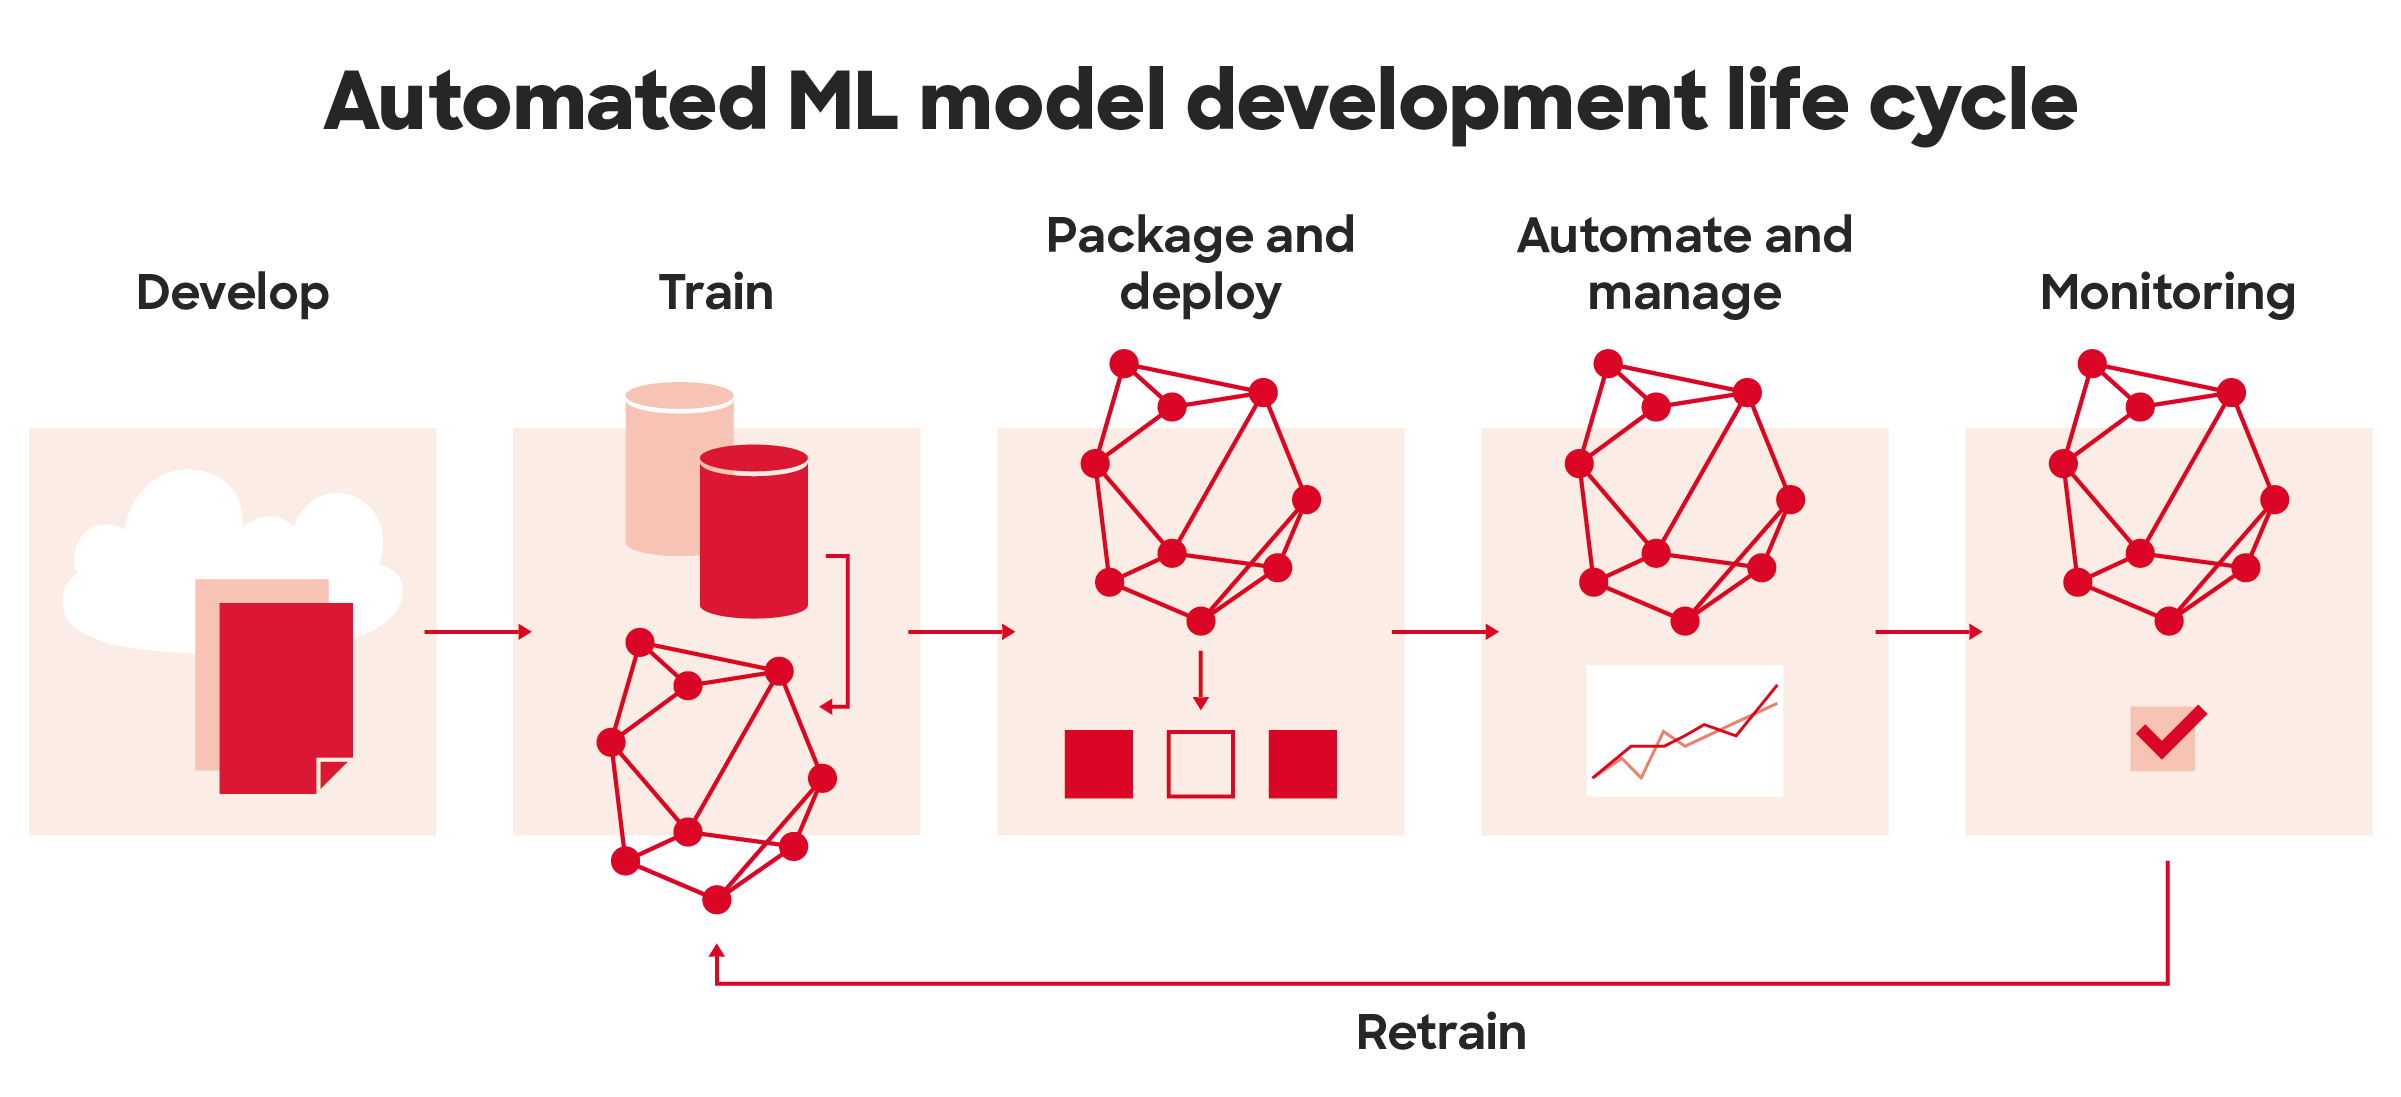 ML model development lifecycle. The process consists of development, training, packaging and deploying, automating and managing and monitoring.